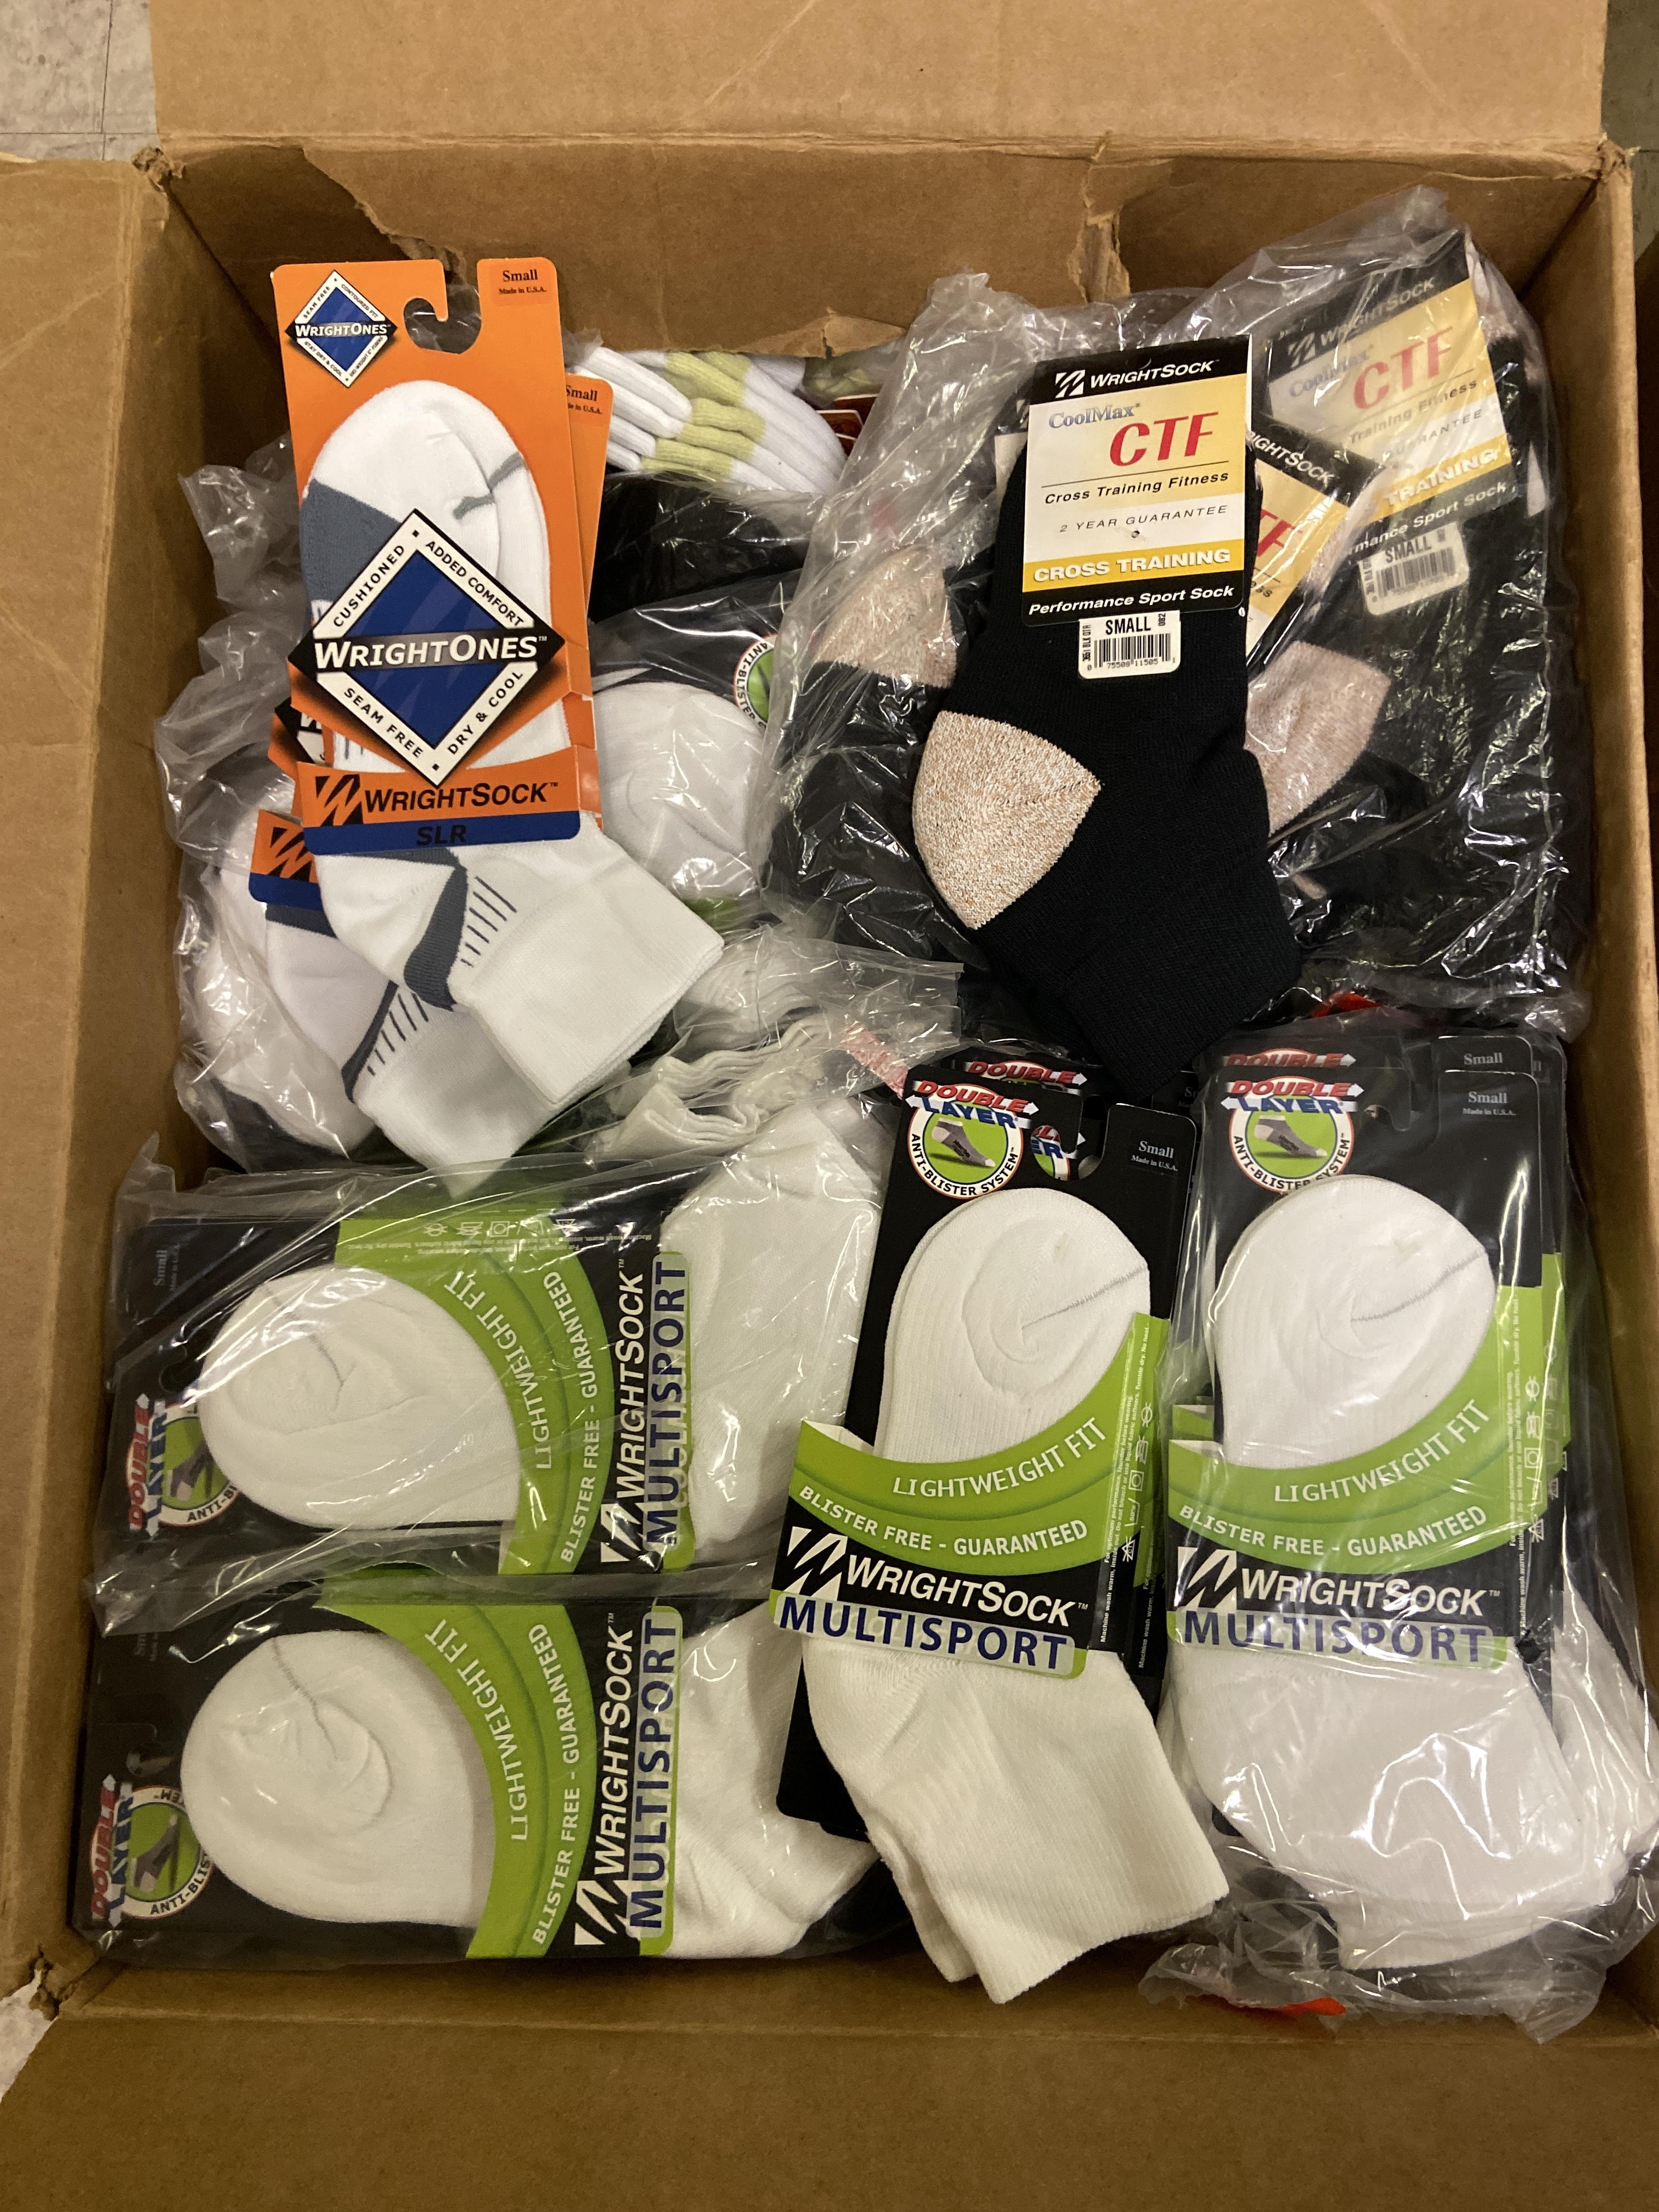 Lot 24 - 250+ packs of New Socks, Wrightsock Various Styles, Various Colors Lot includes approximately 250